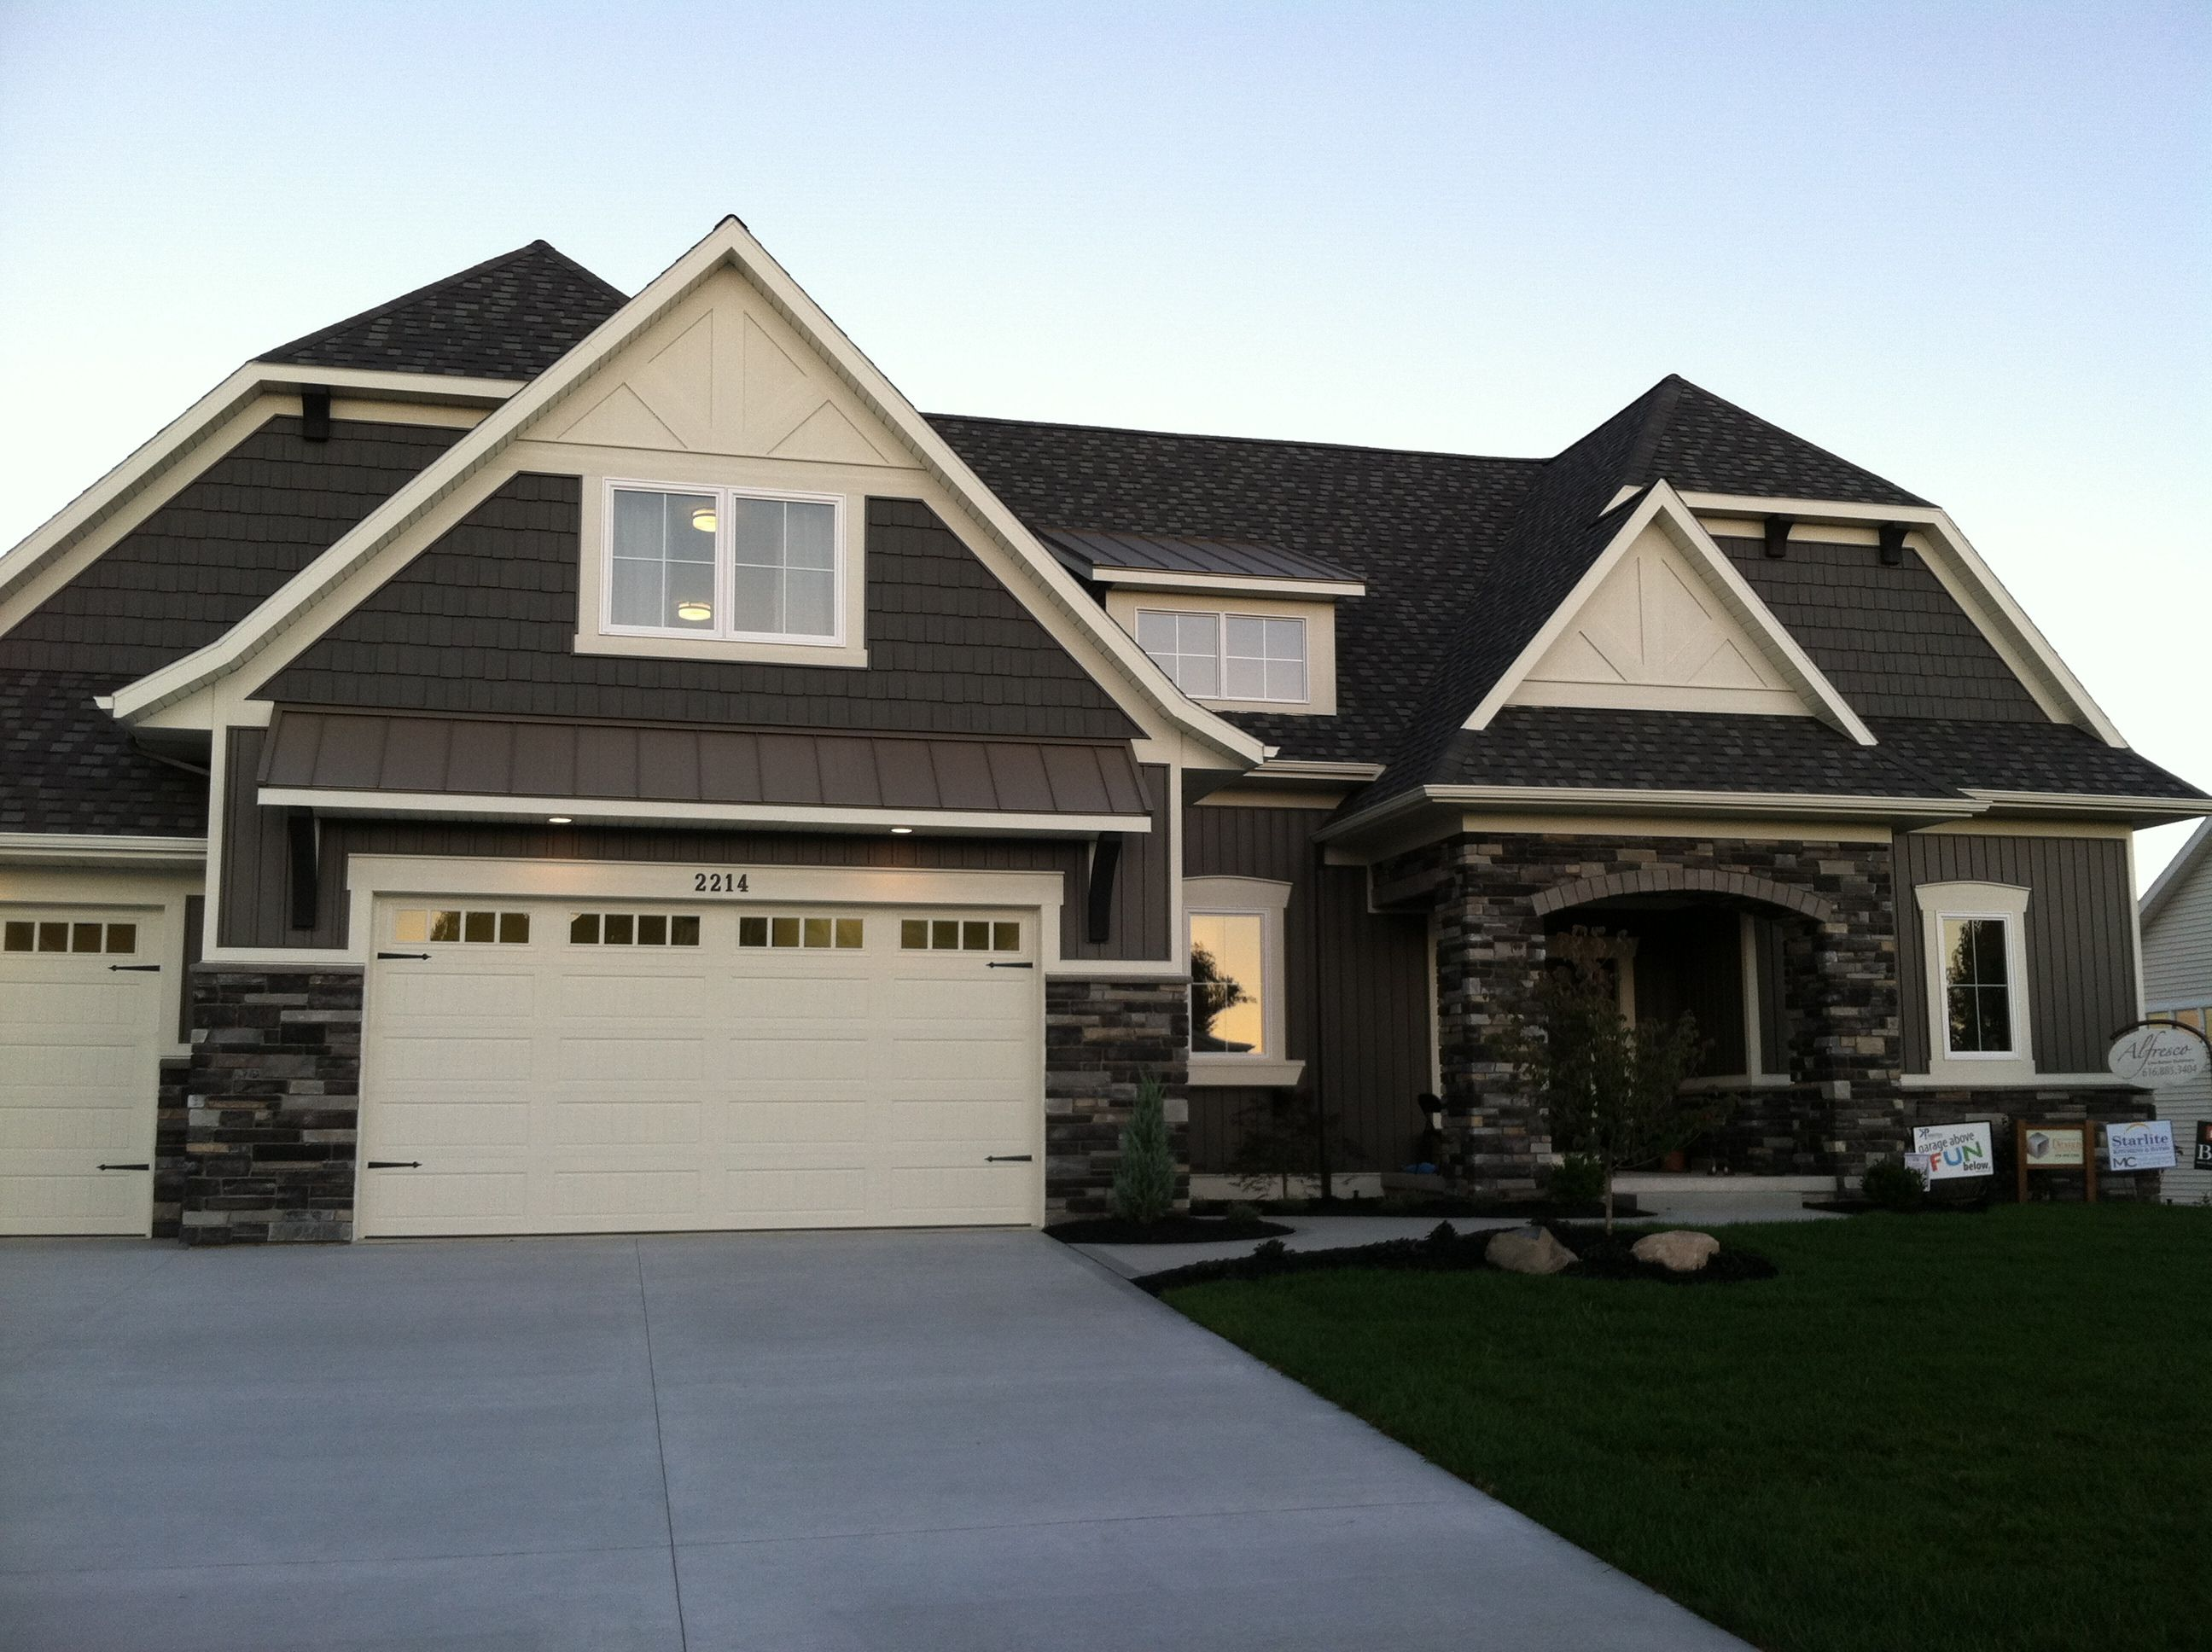 Awesome exterior home color schemes for Building exterior colour